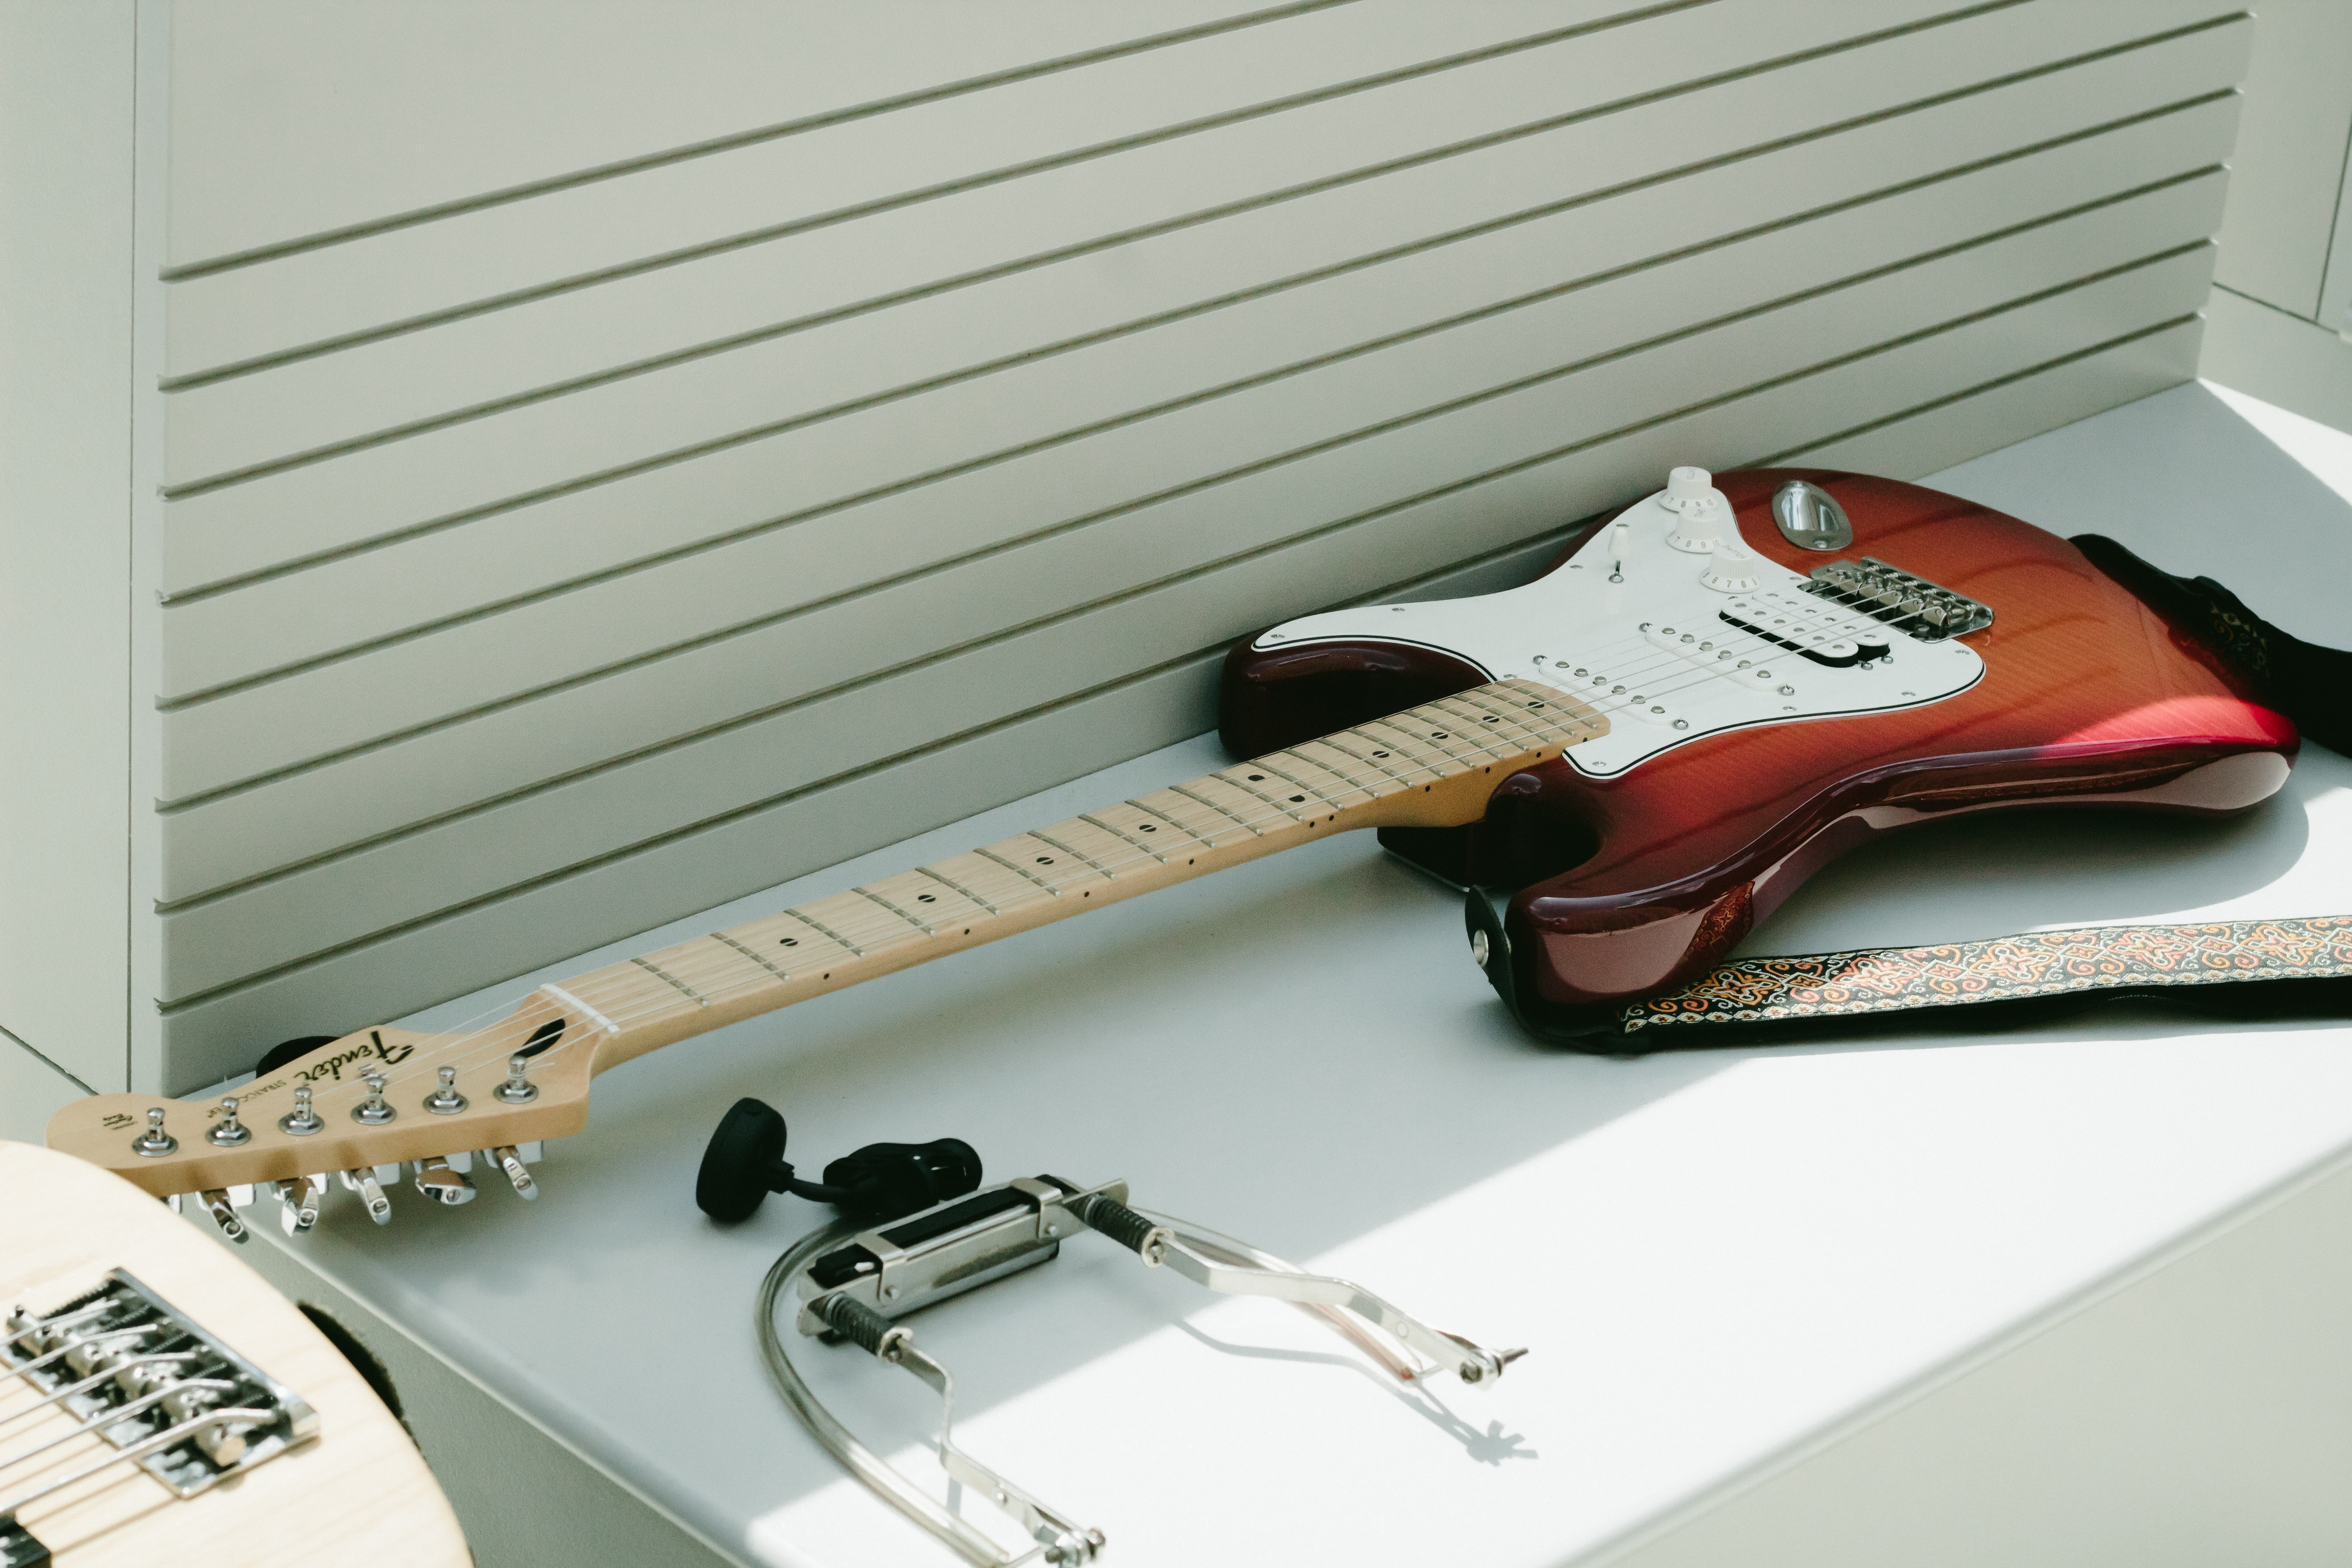 white and brown electric guitar on top of white wooden surface